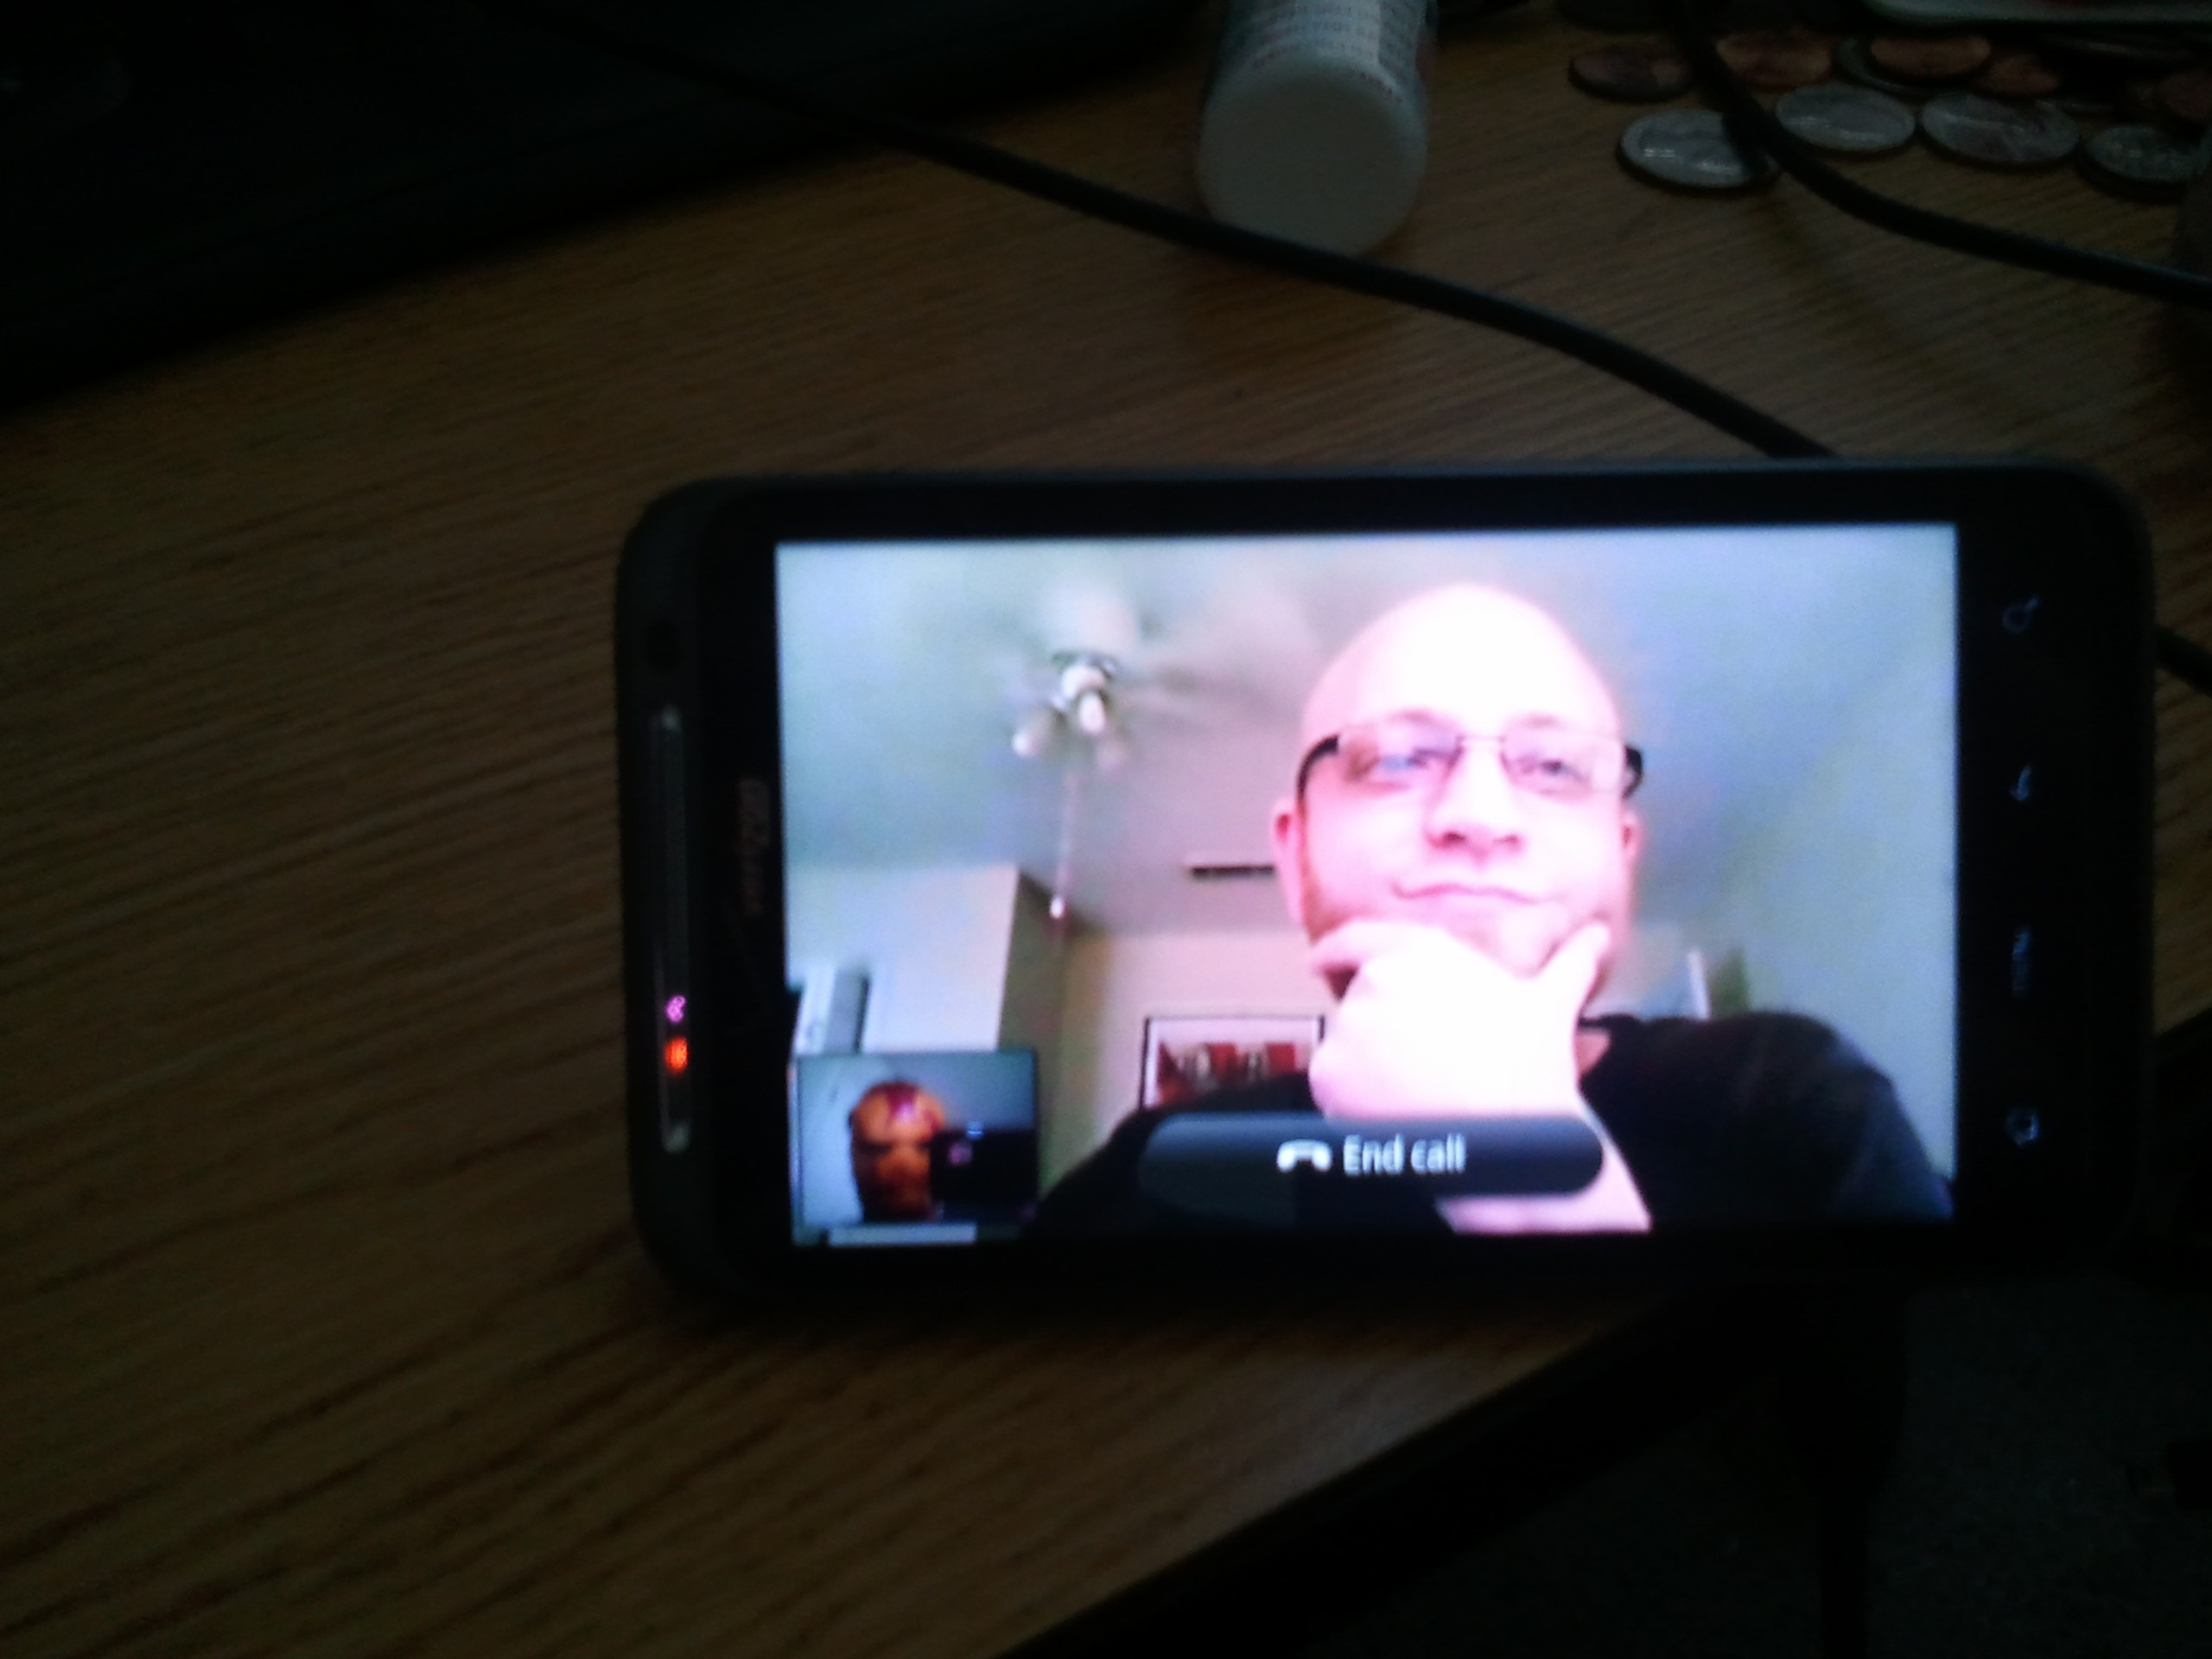 Download] Skype With Video Chat For The HTC Thunderbolt